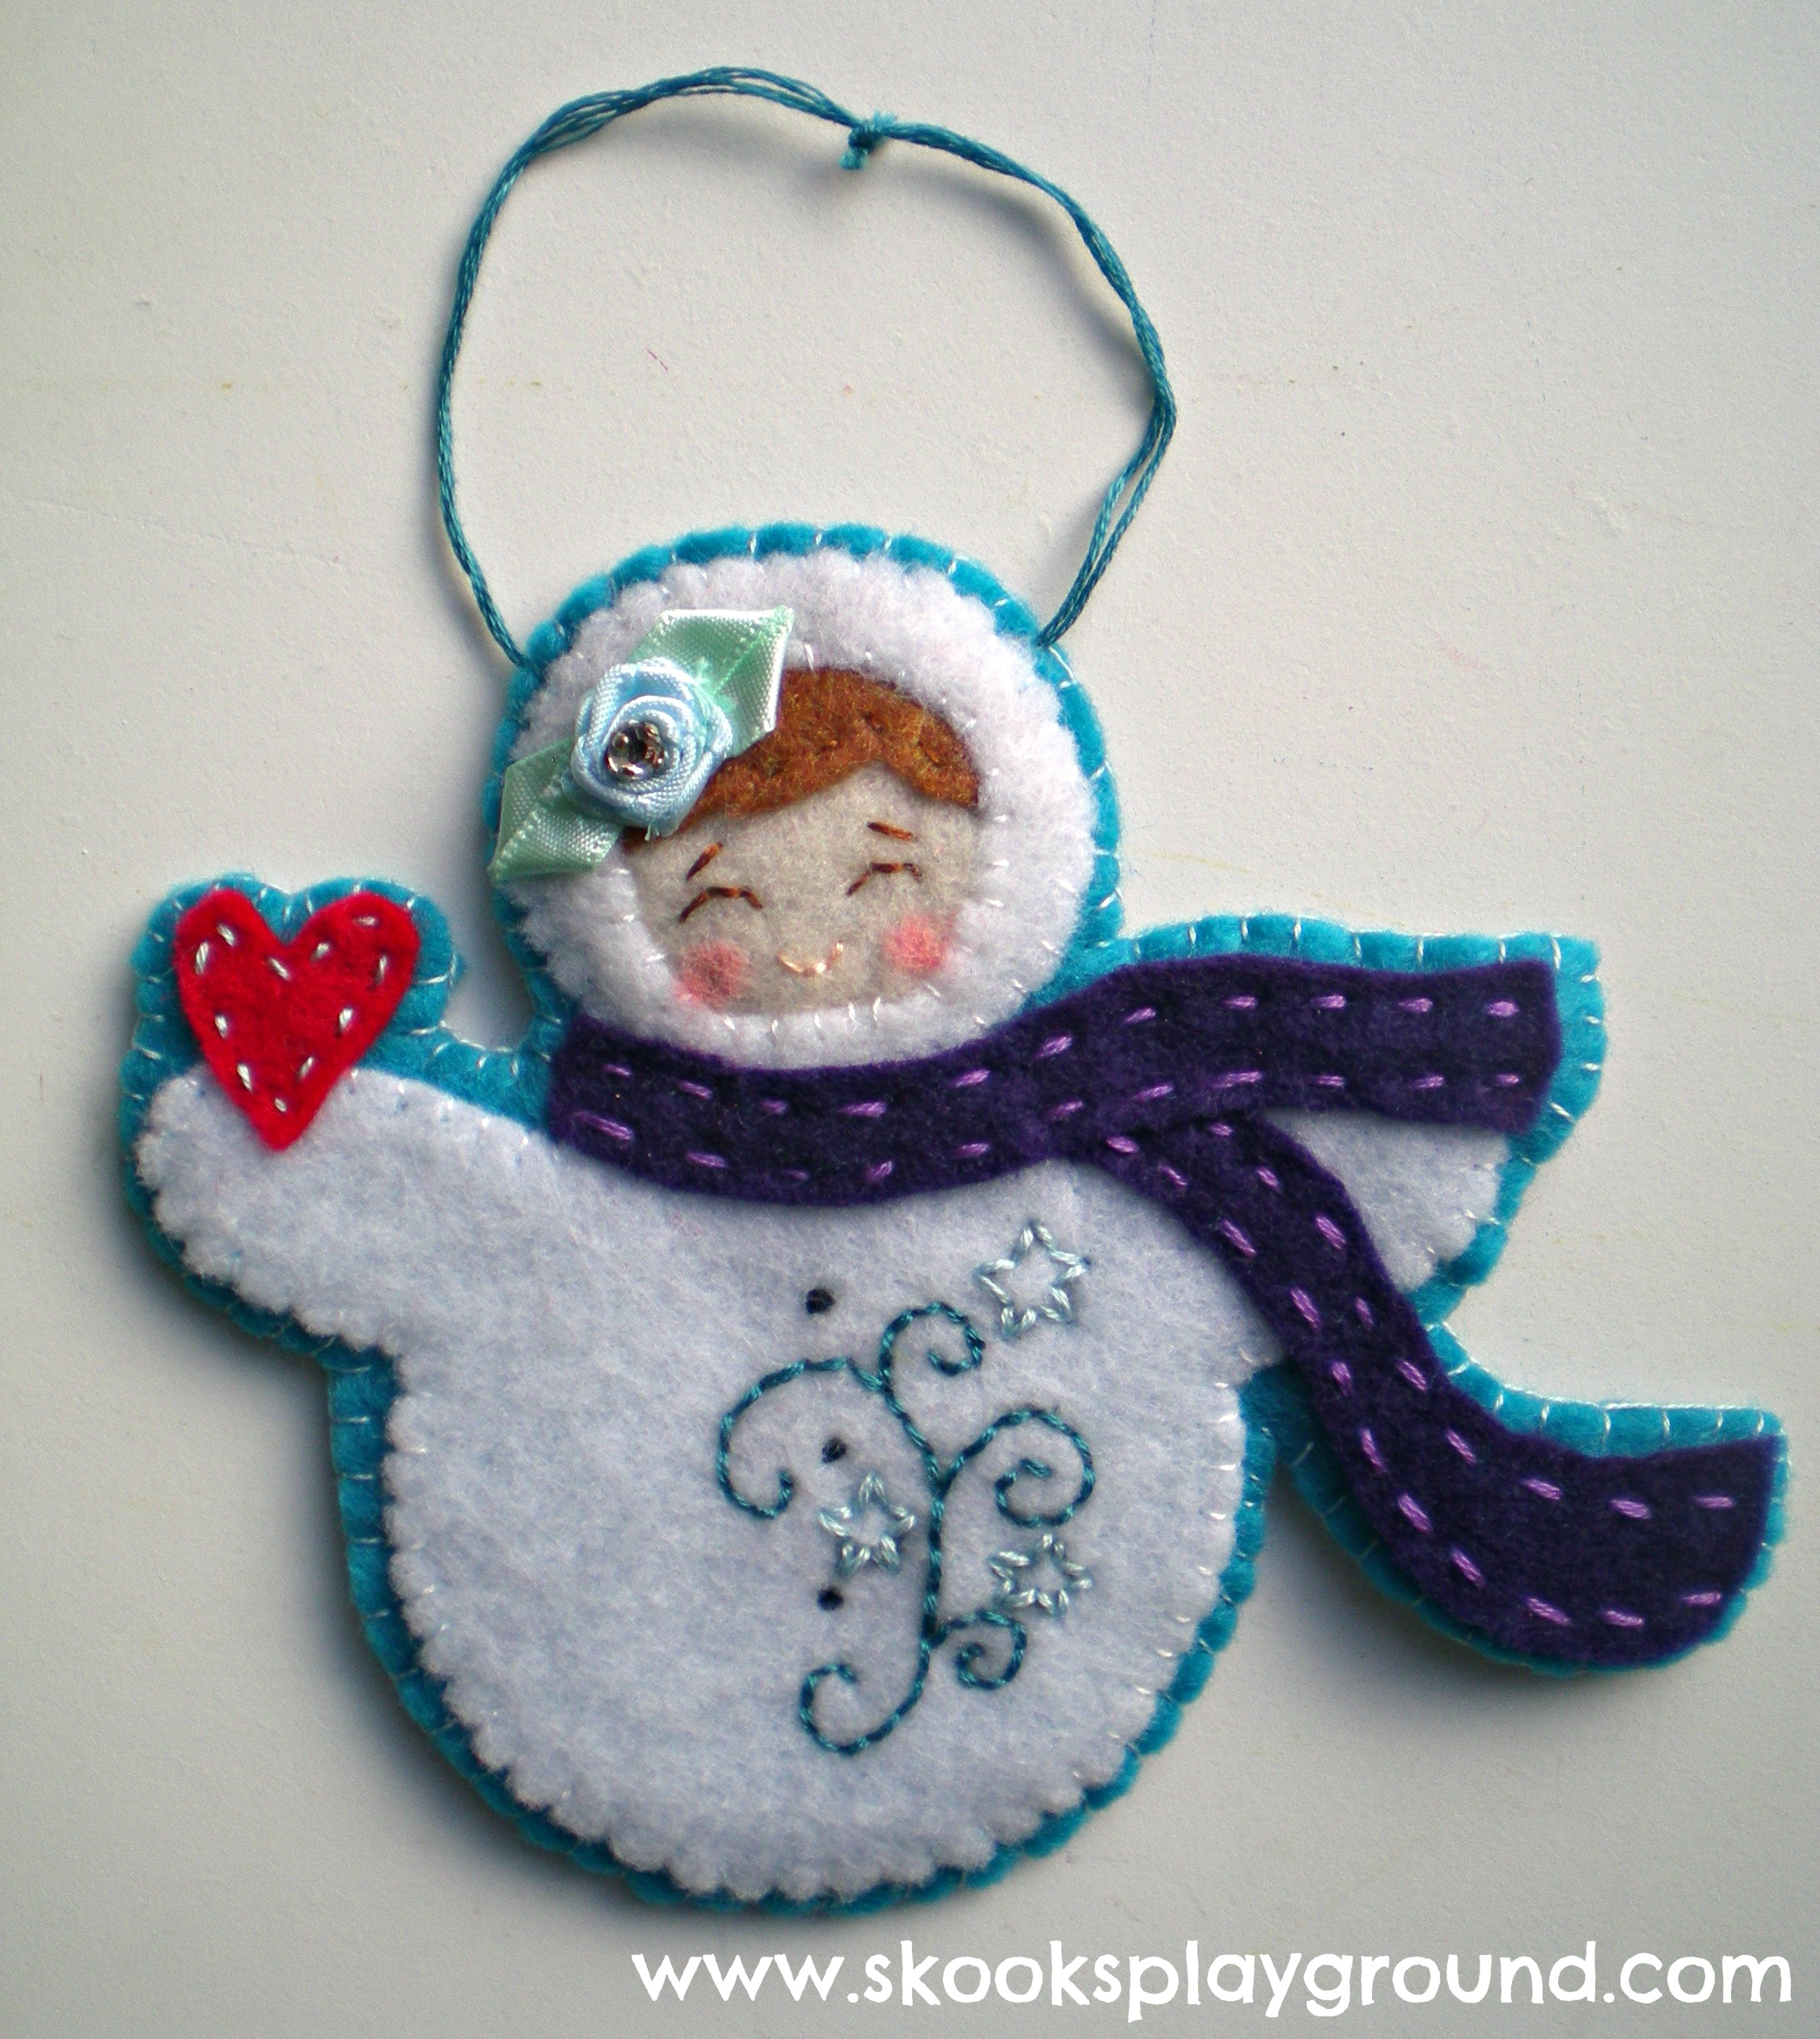 Snow Baby Ornament for Kiwi 2012